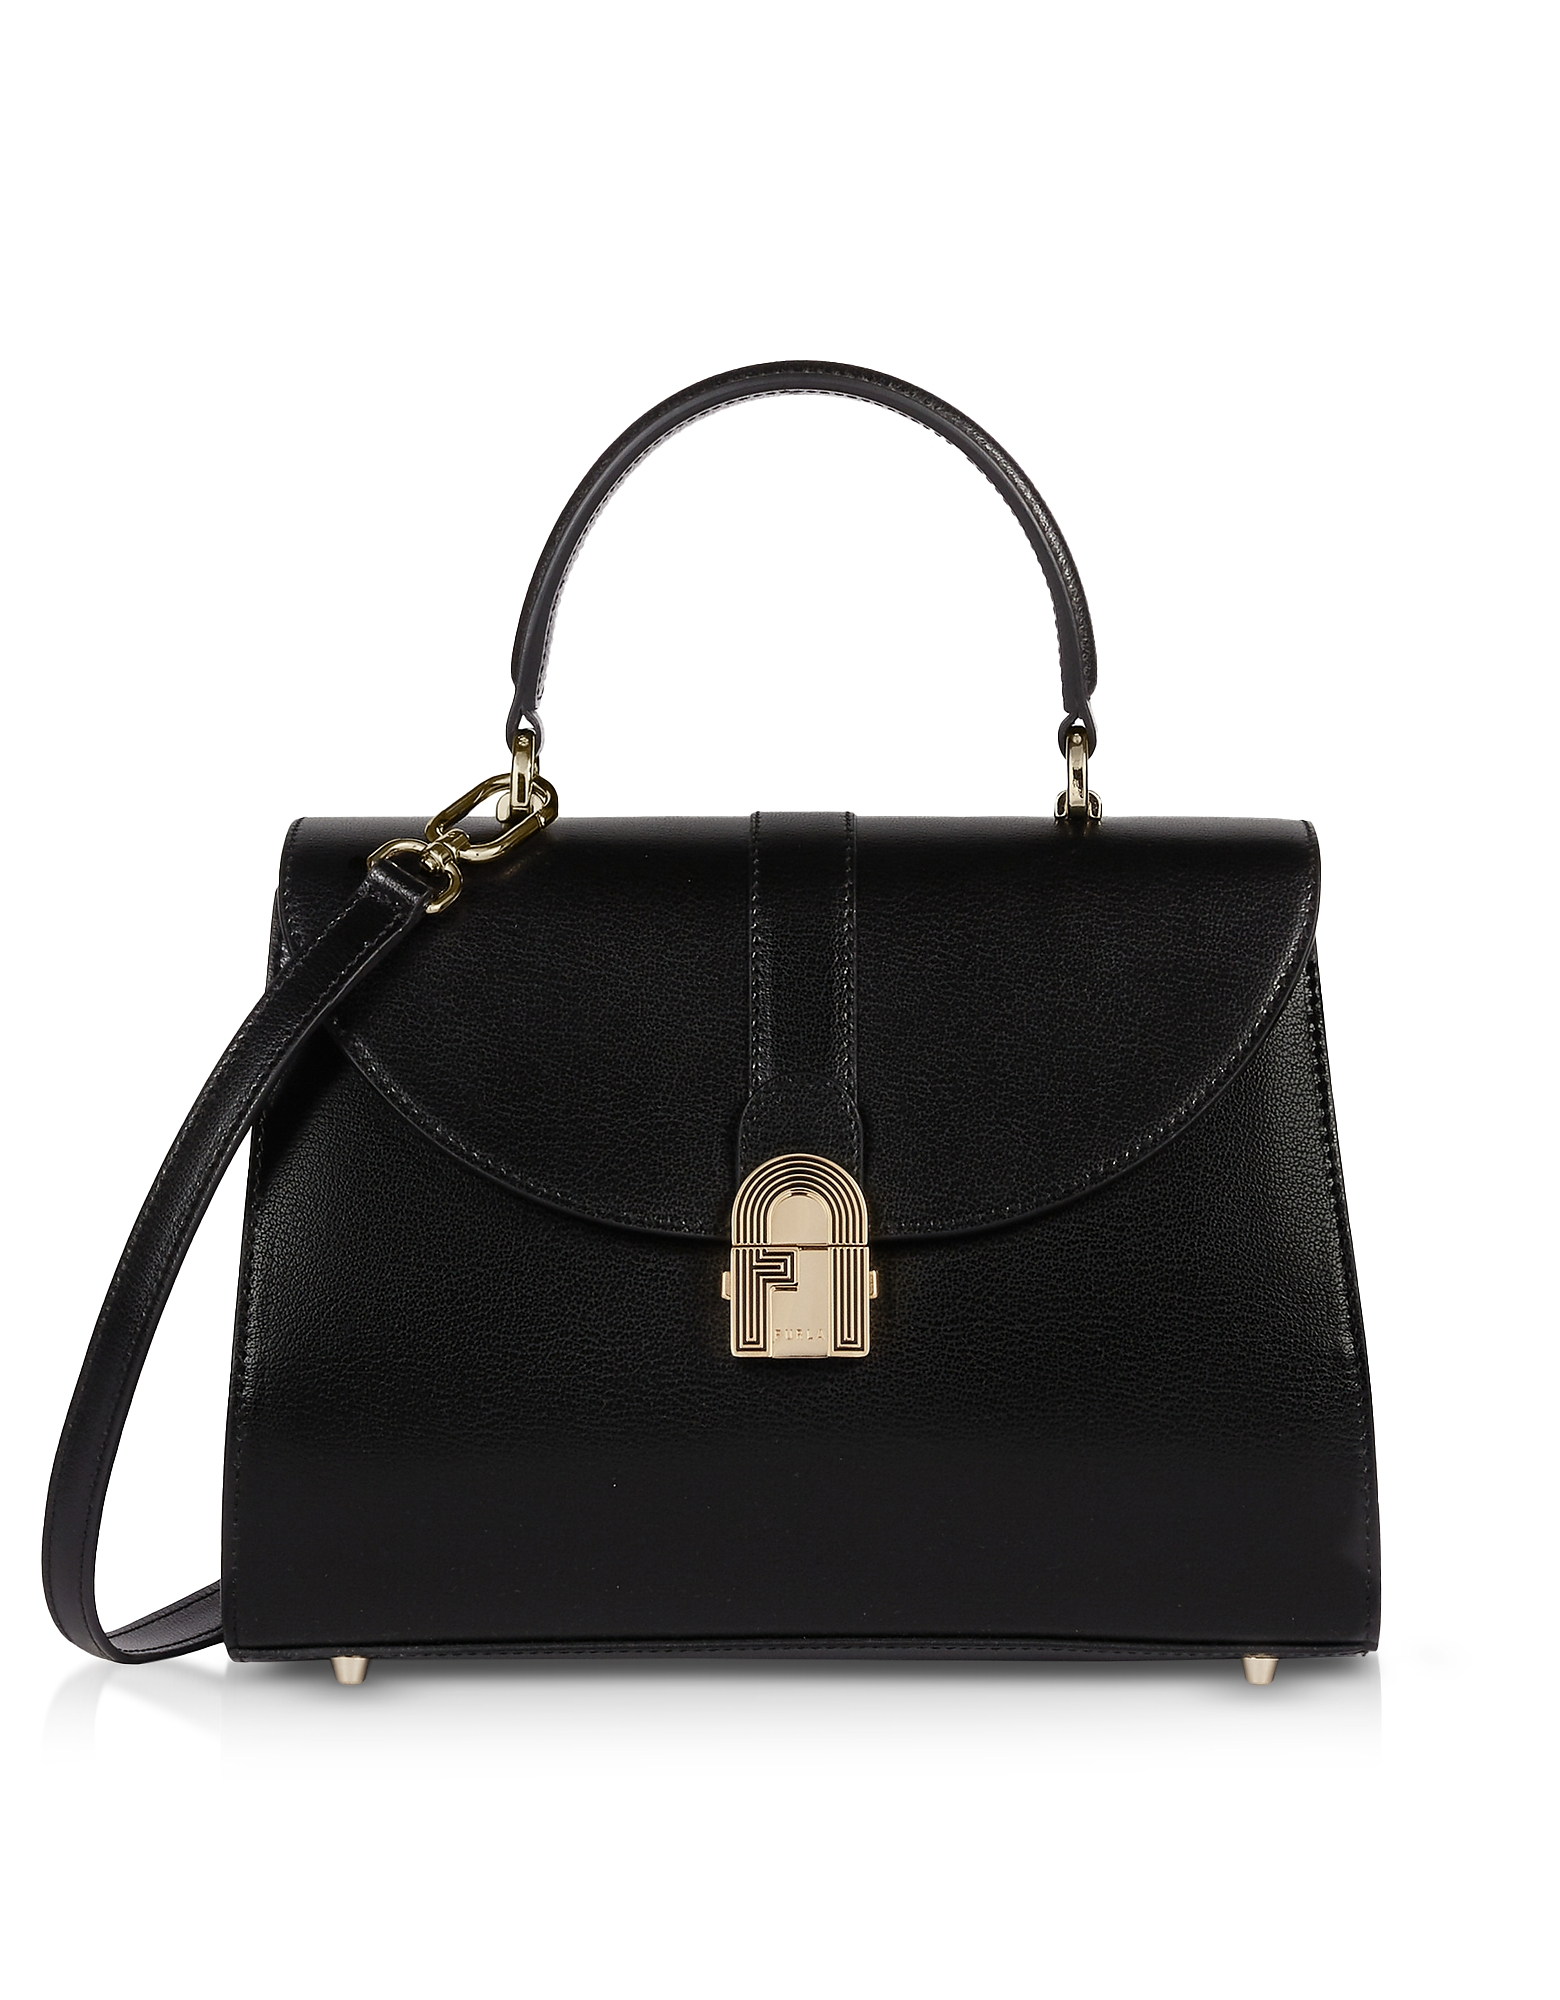 Furla Designer Handbags, 1927 Opera L Top-Handle Satchel Bag